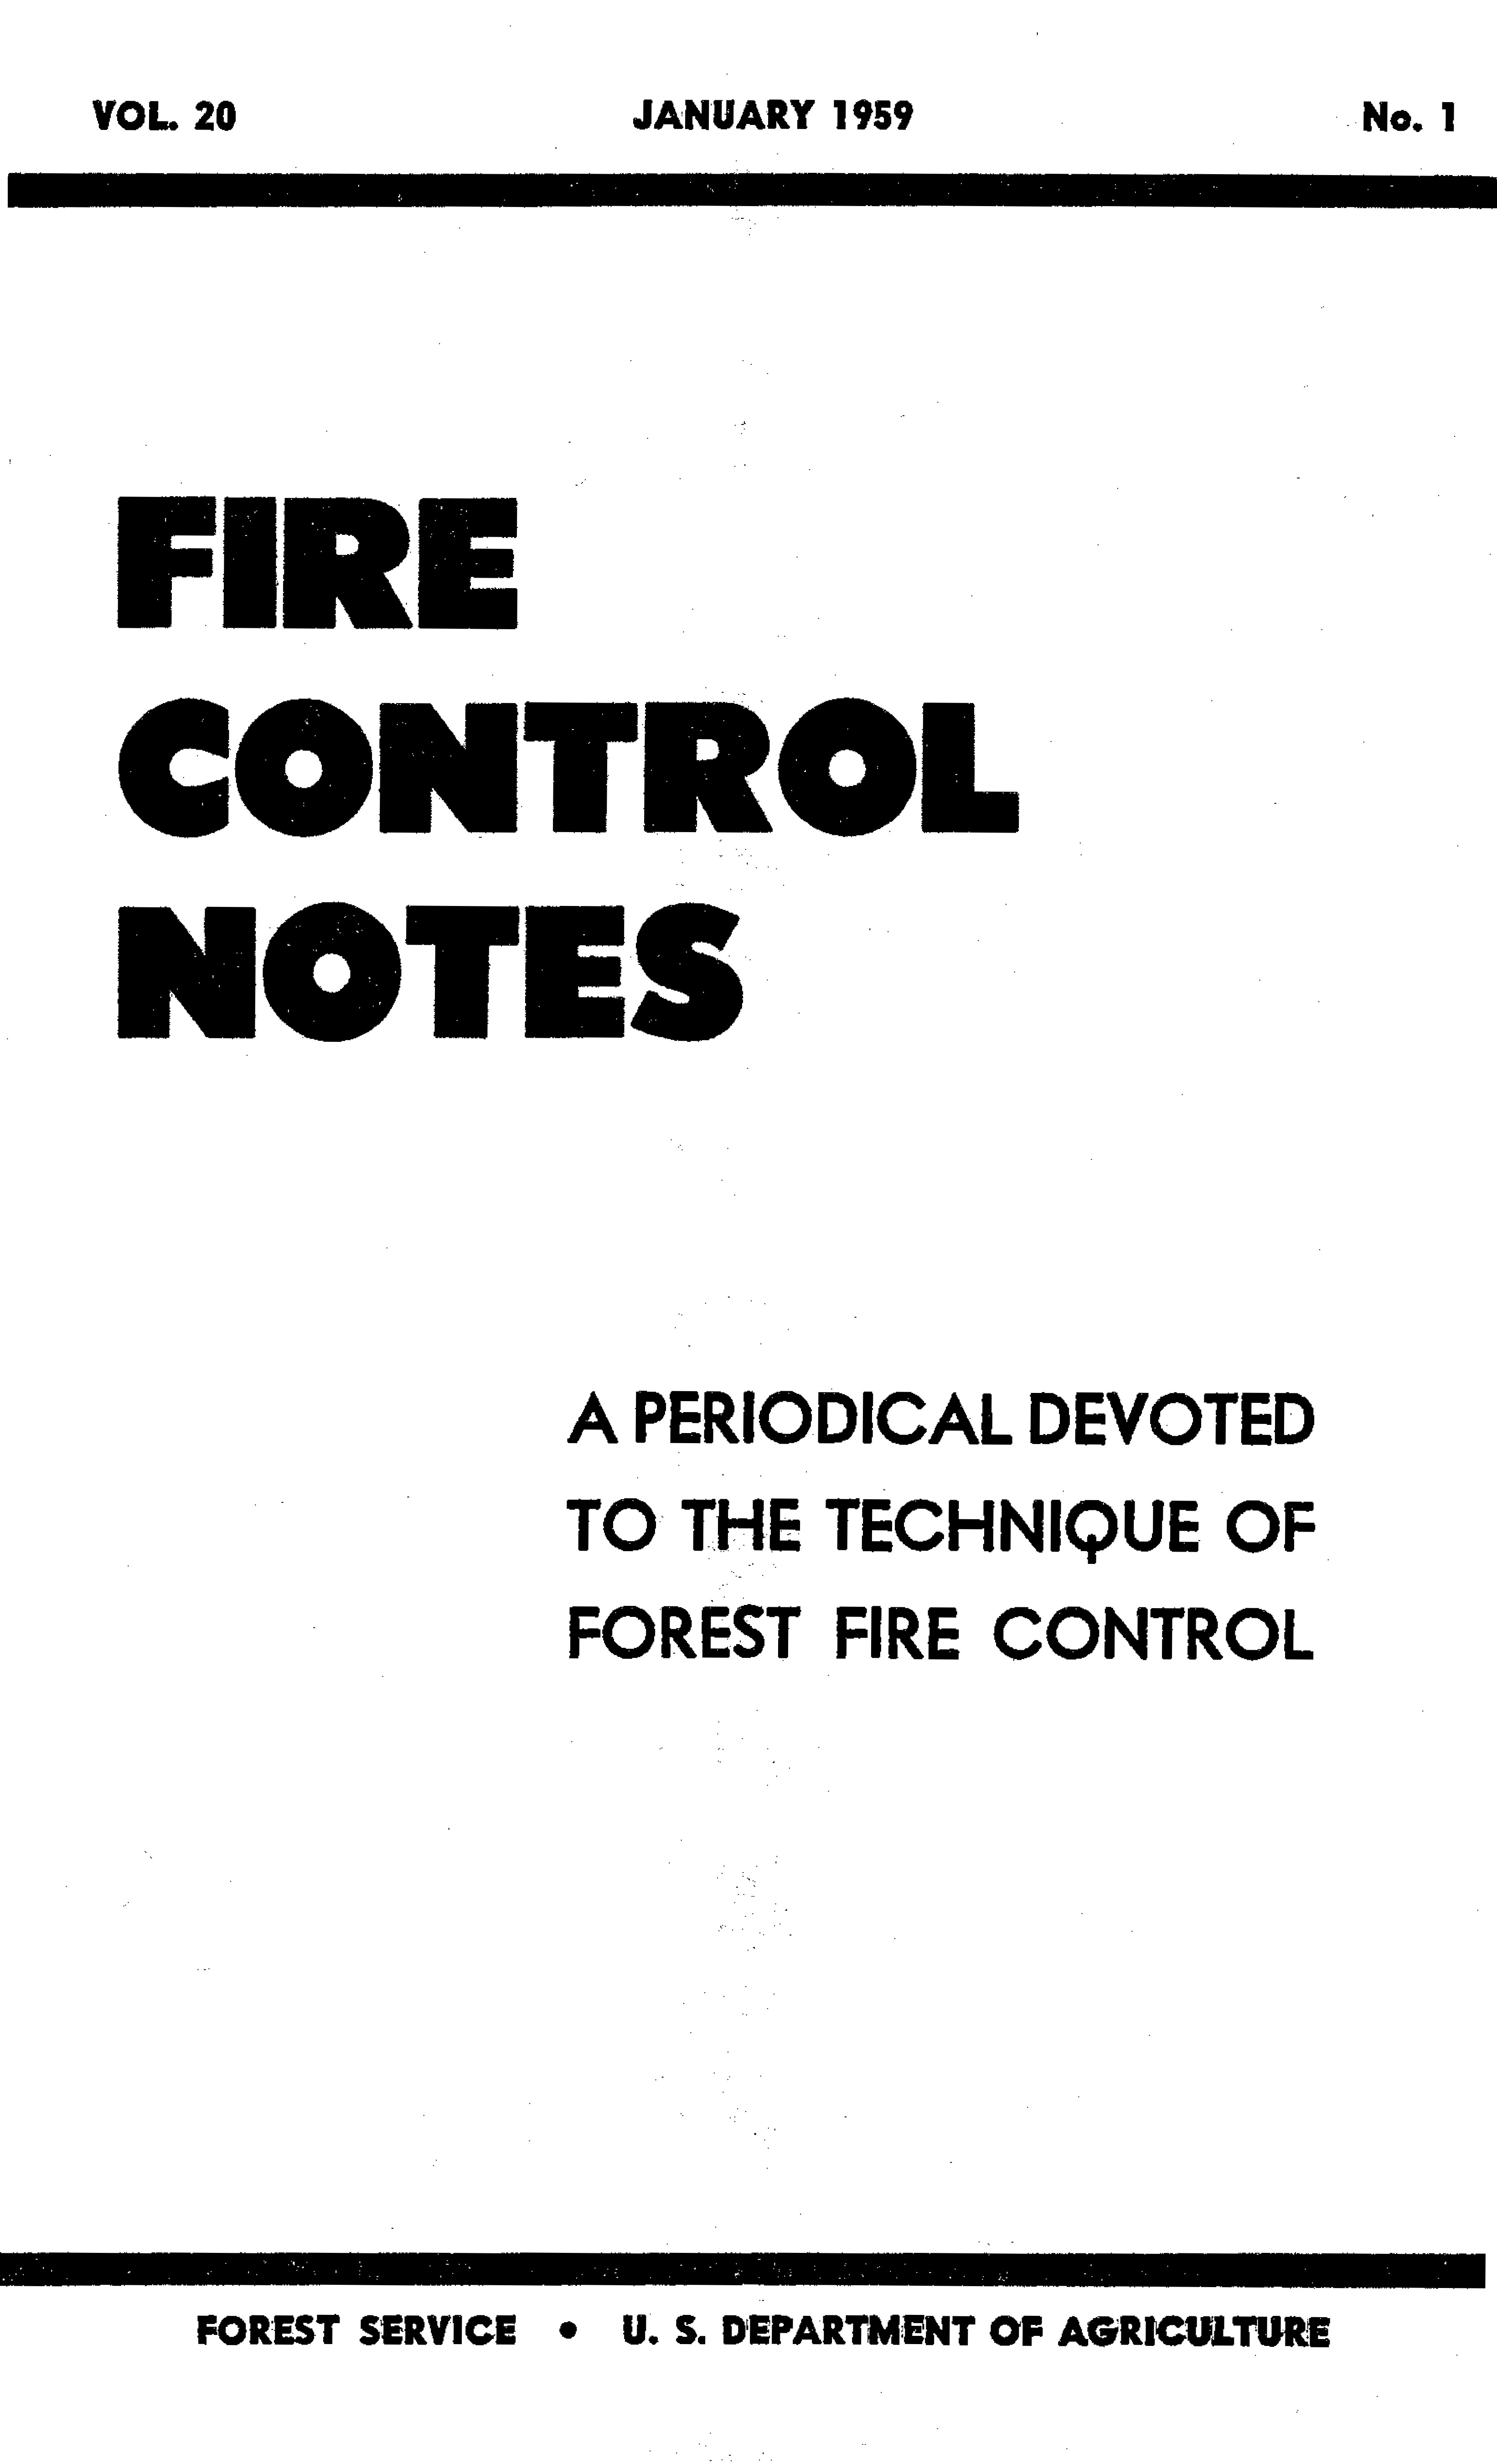 Cover of Fire Management Today Volume 20, Issue 01